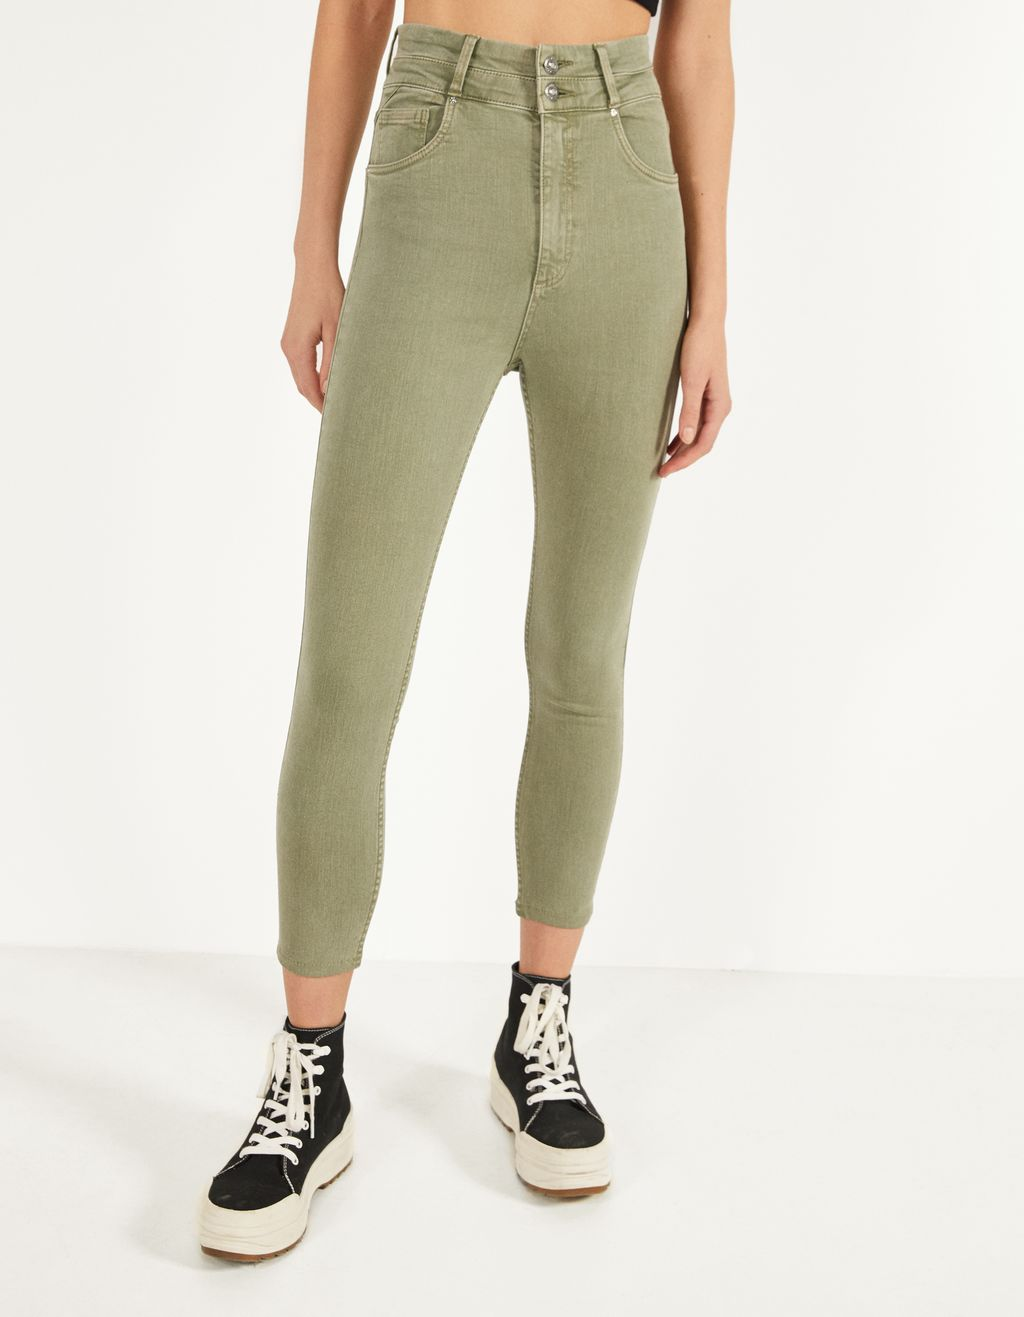 Pantaloni Super high waist